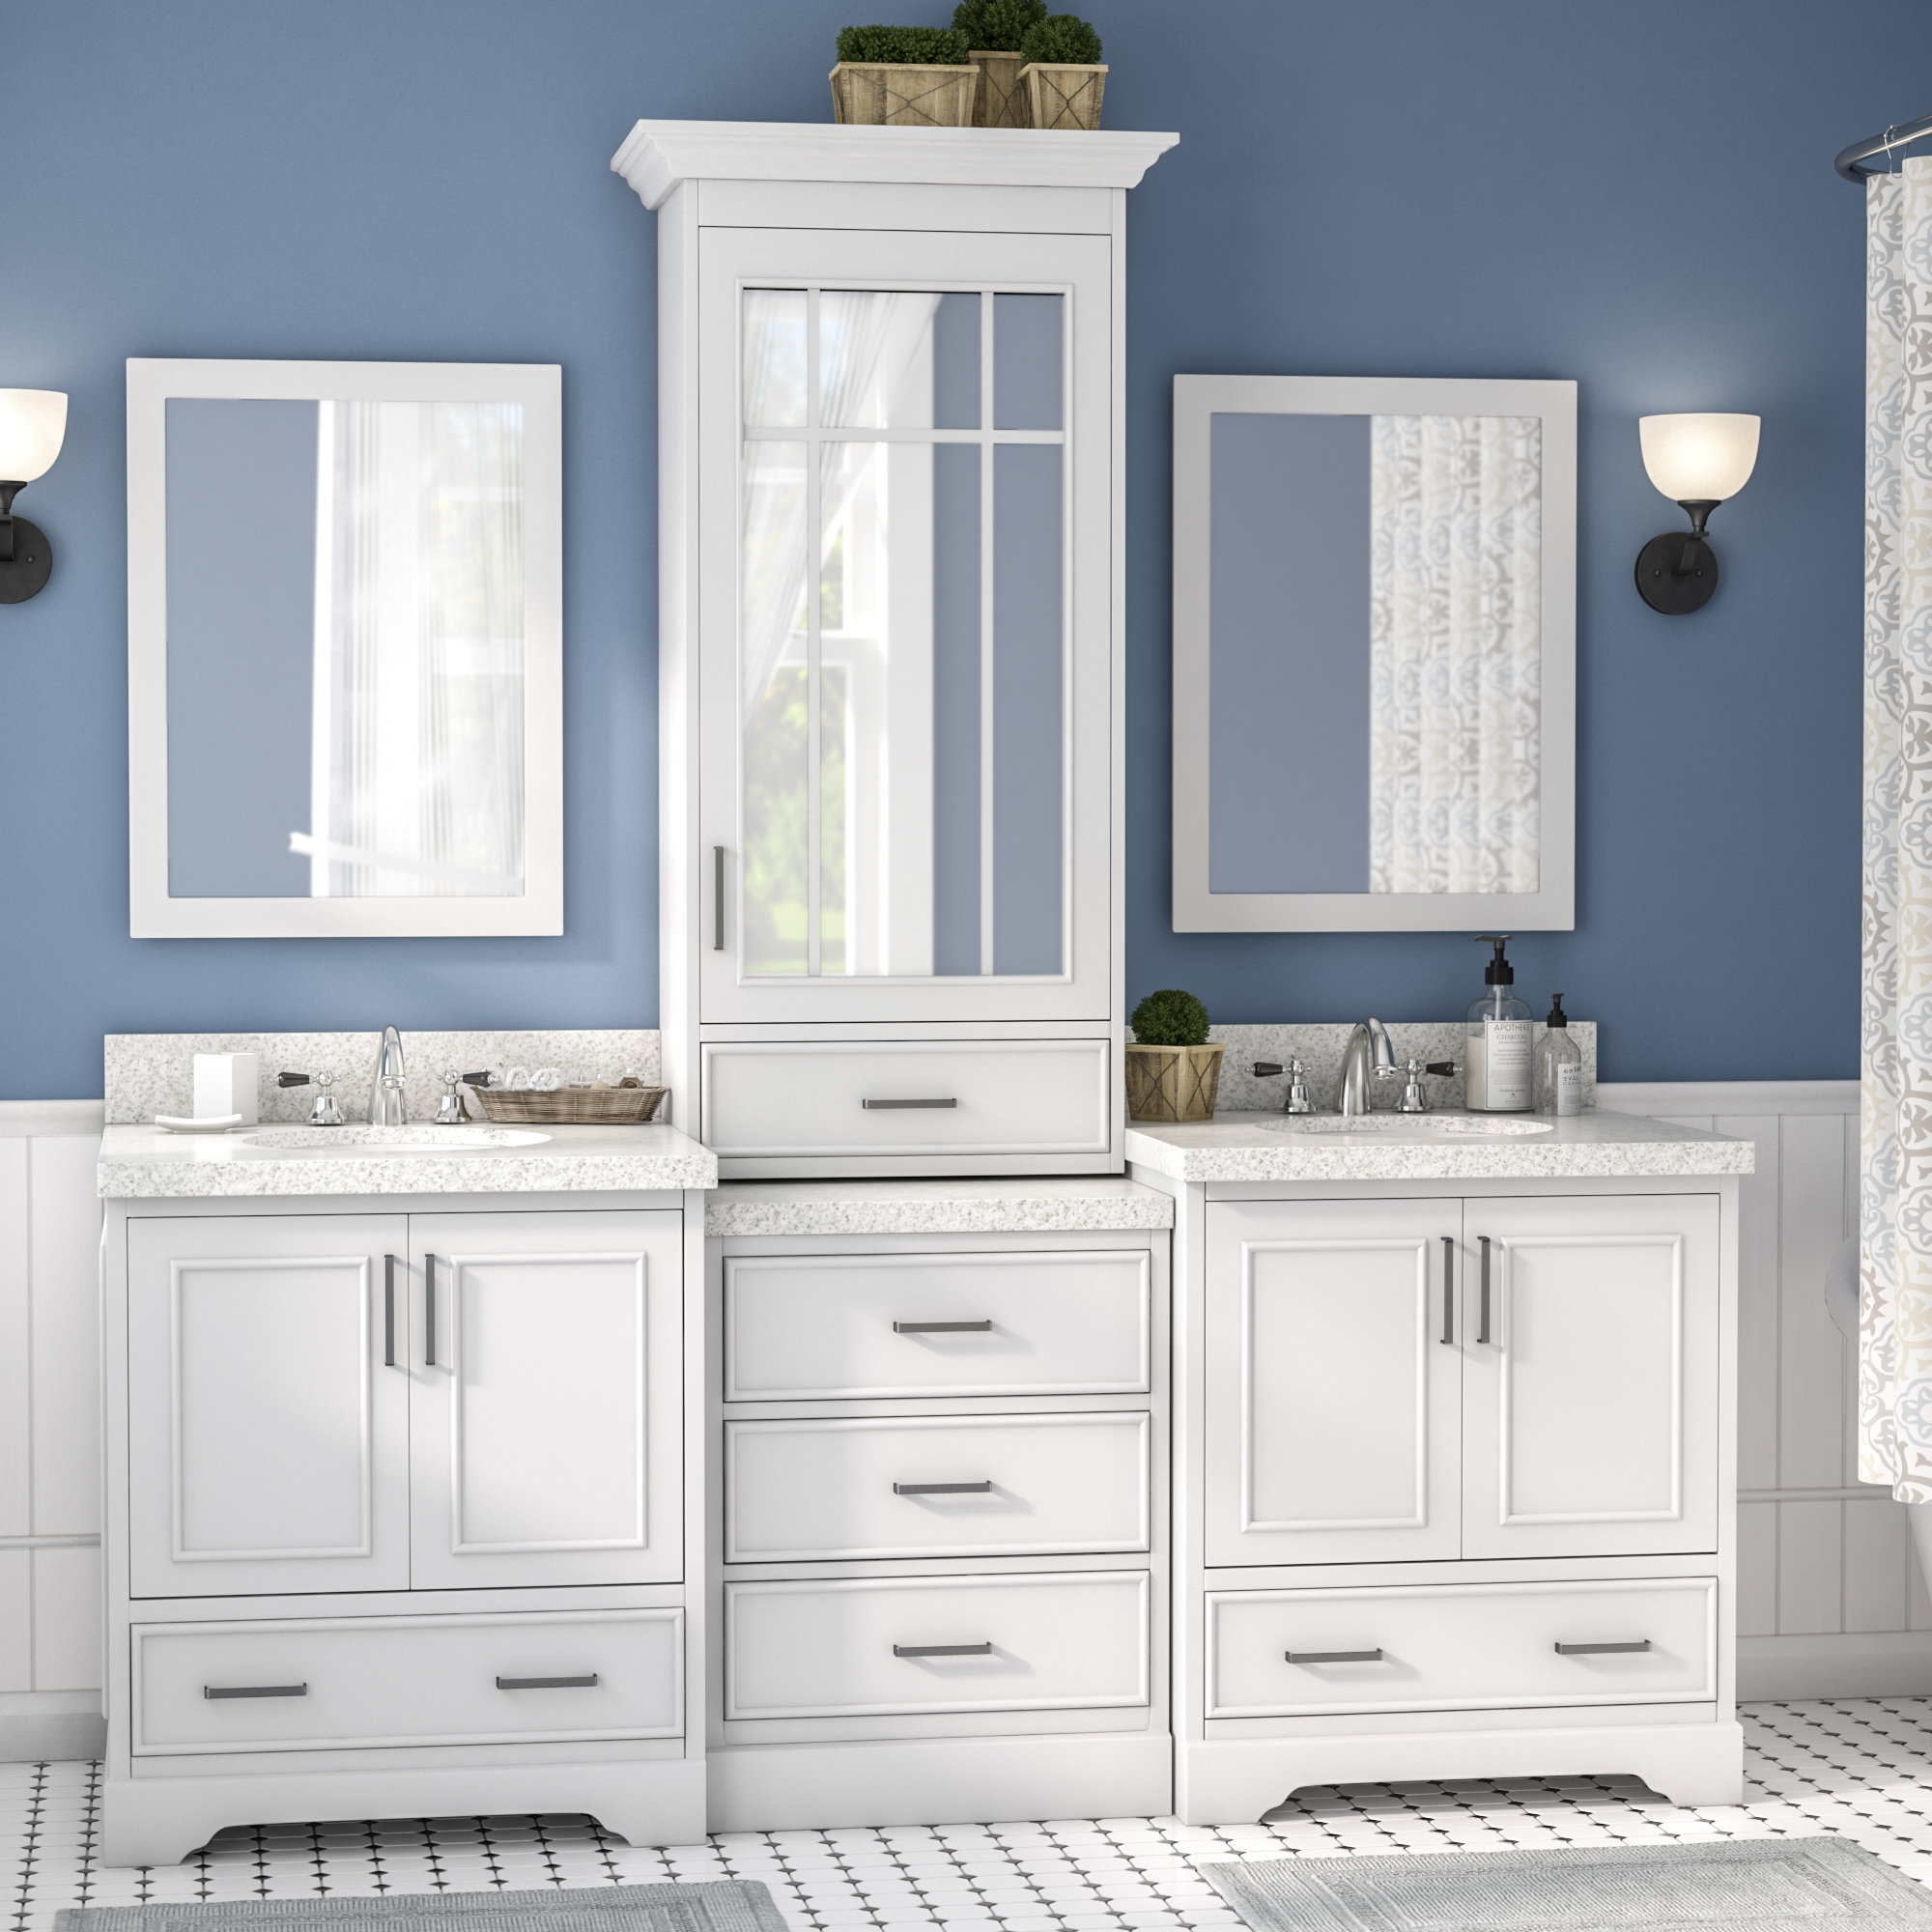 Geraldina 85 Double Sink Bathroom Vanity With Mirror inside measurements 2000 X 2000